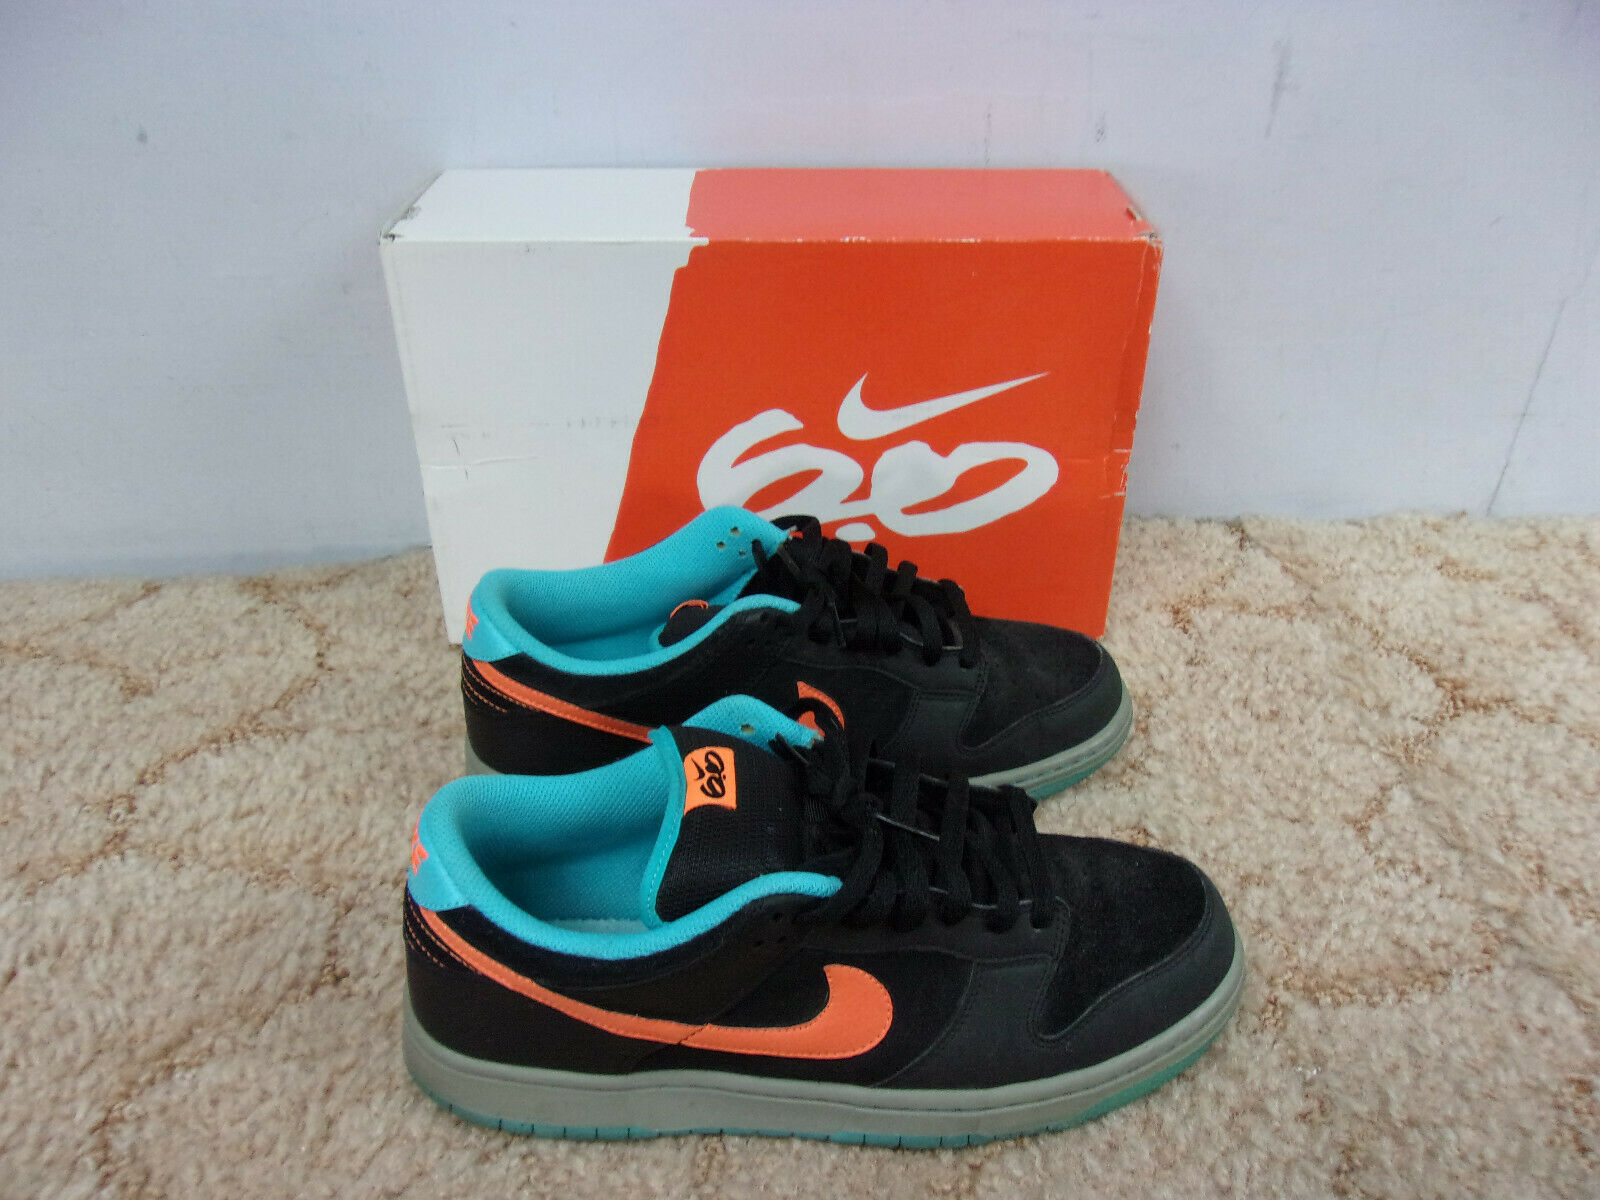 NIKE Dunk Low AS Black orange blueee shoes w Box Size 10 S01